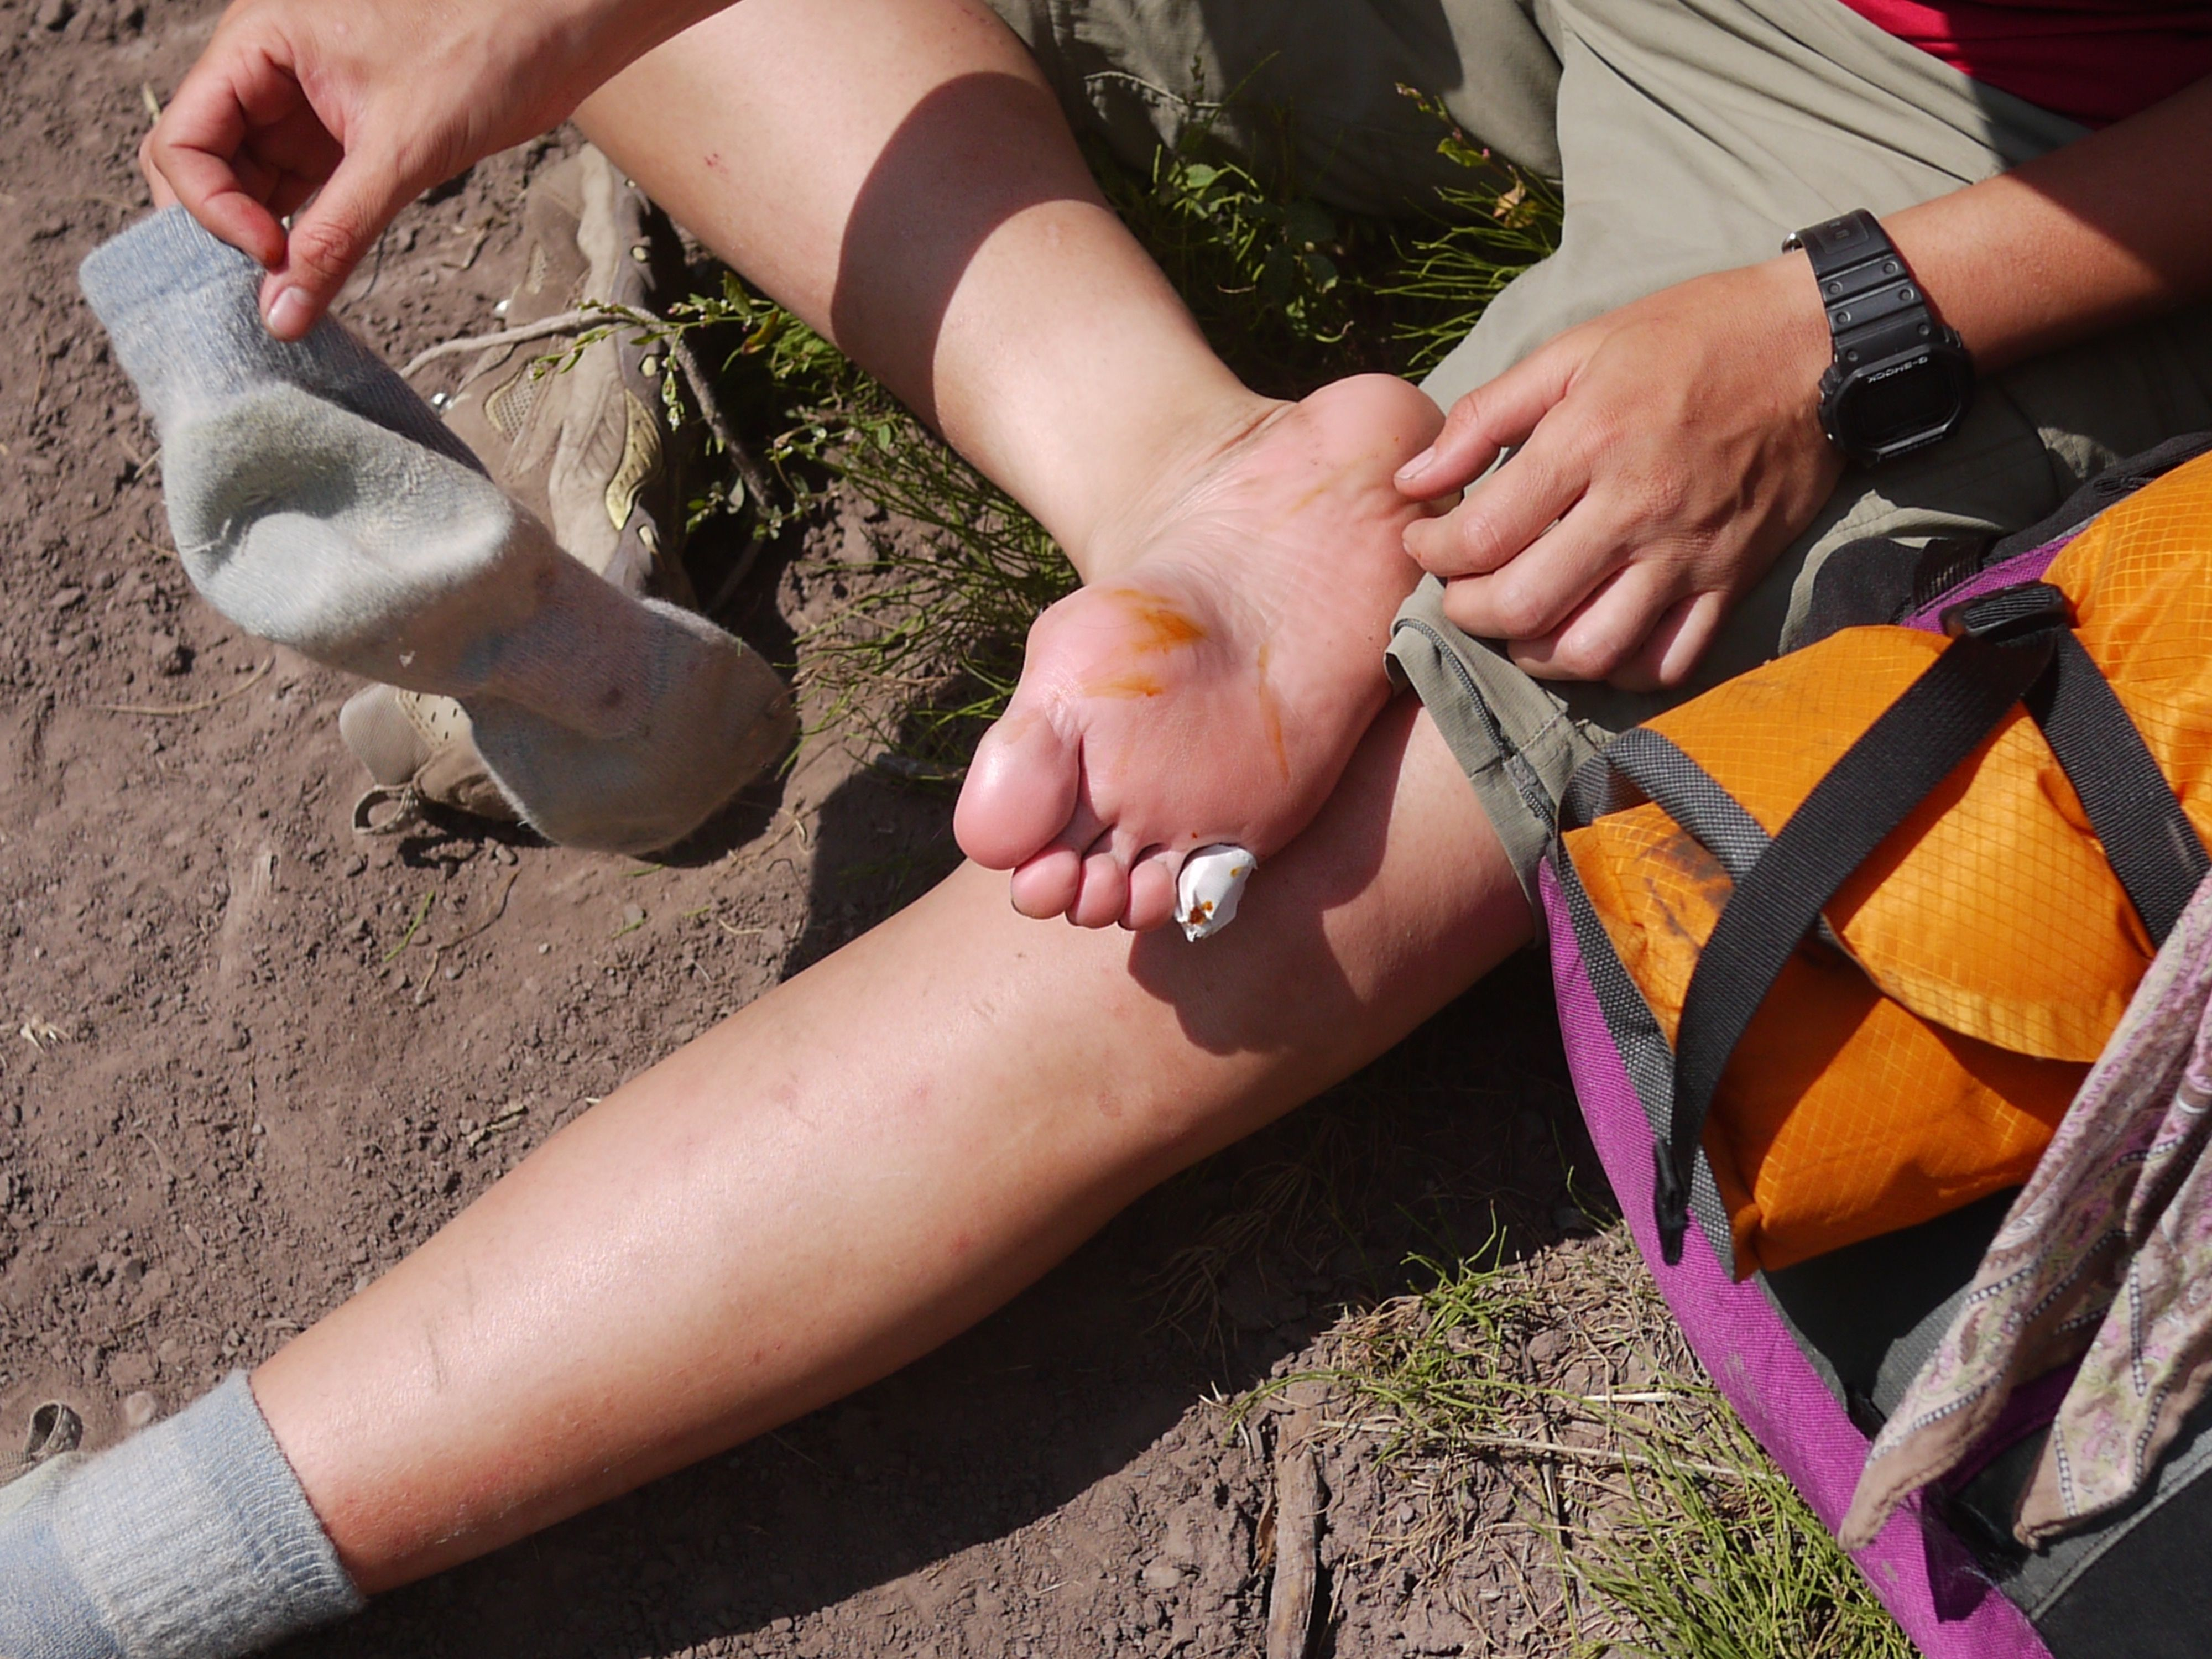 Blisters And Footwear With Images Wear You Out Grain Of Sand